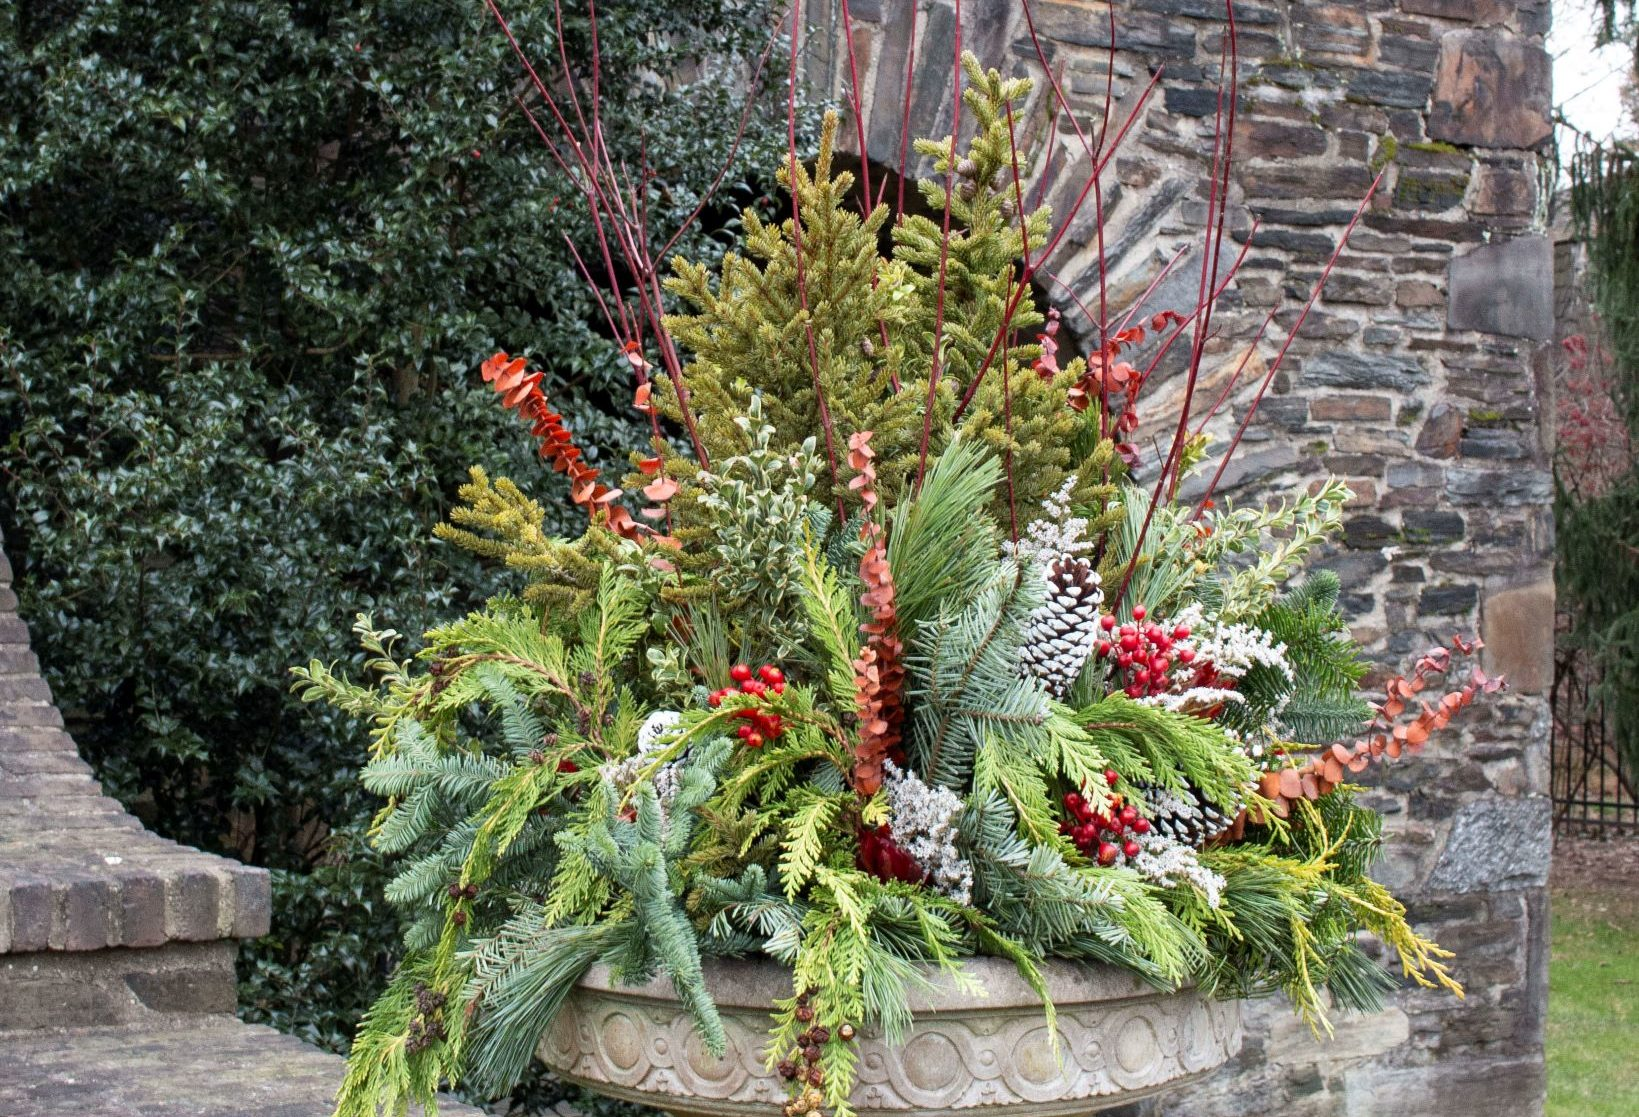 Winter Planter Arrangement in cement planter